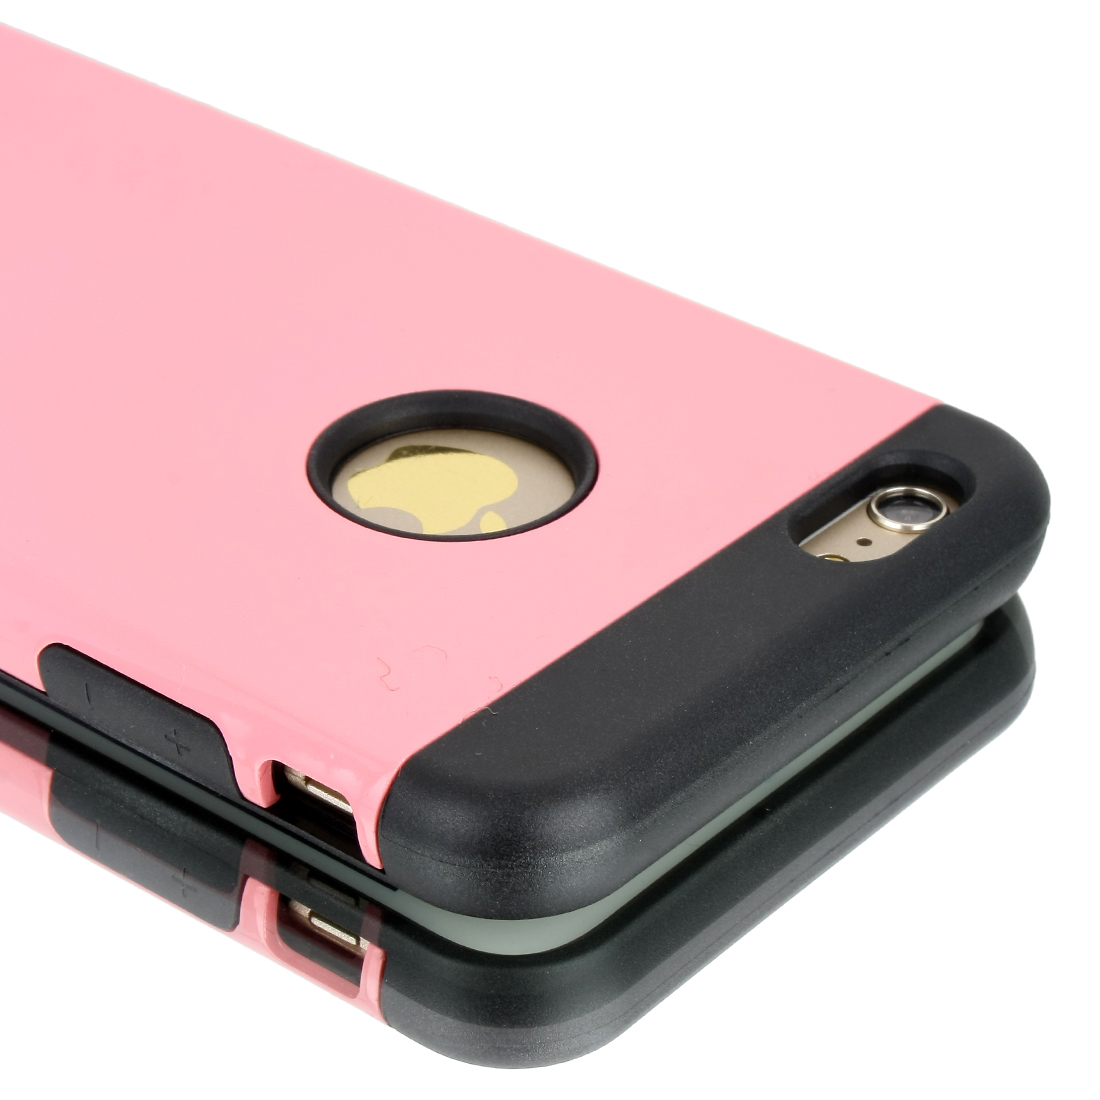 Luxury Phone Case For iPhone 6 Plus Protection Cover With Holder Stand Pink